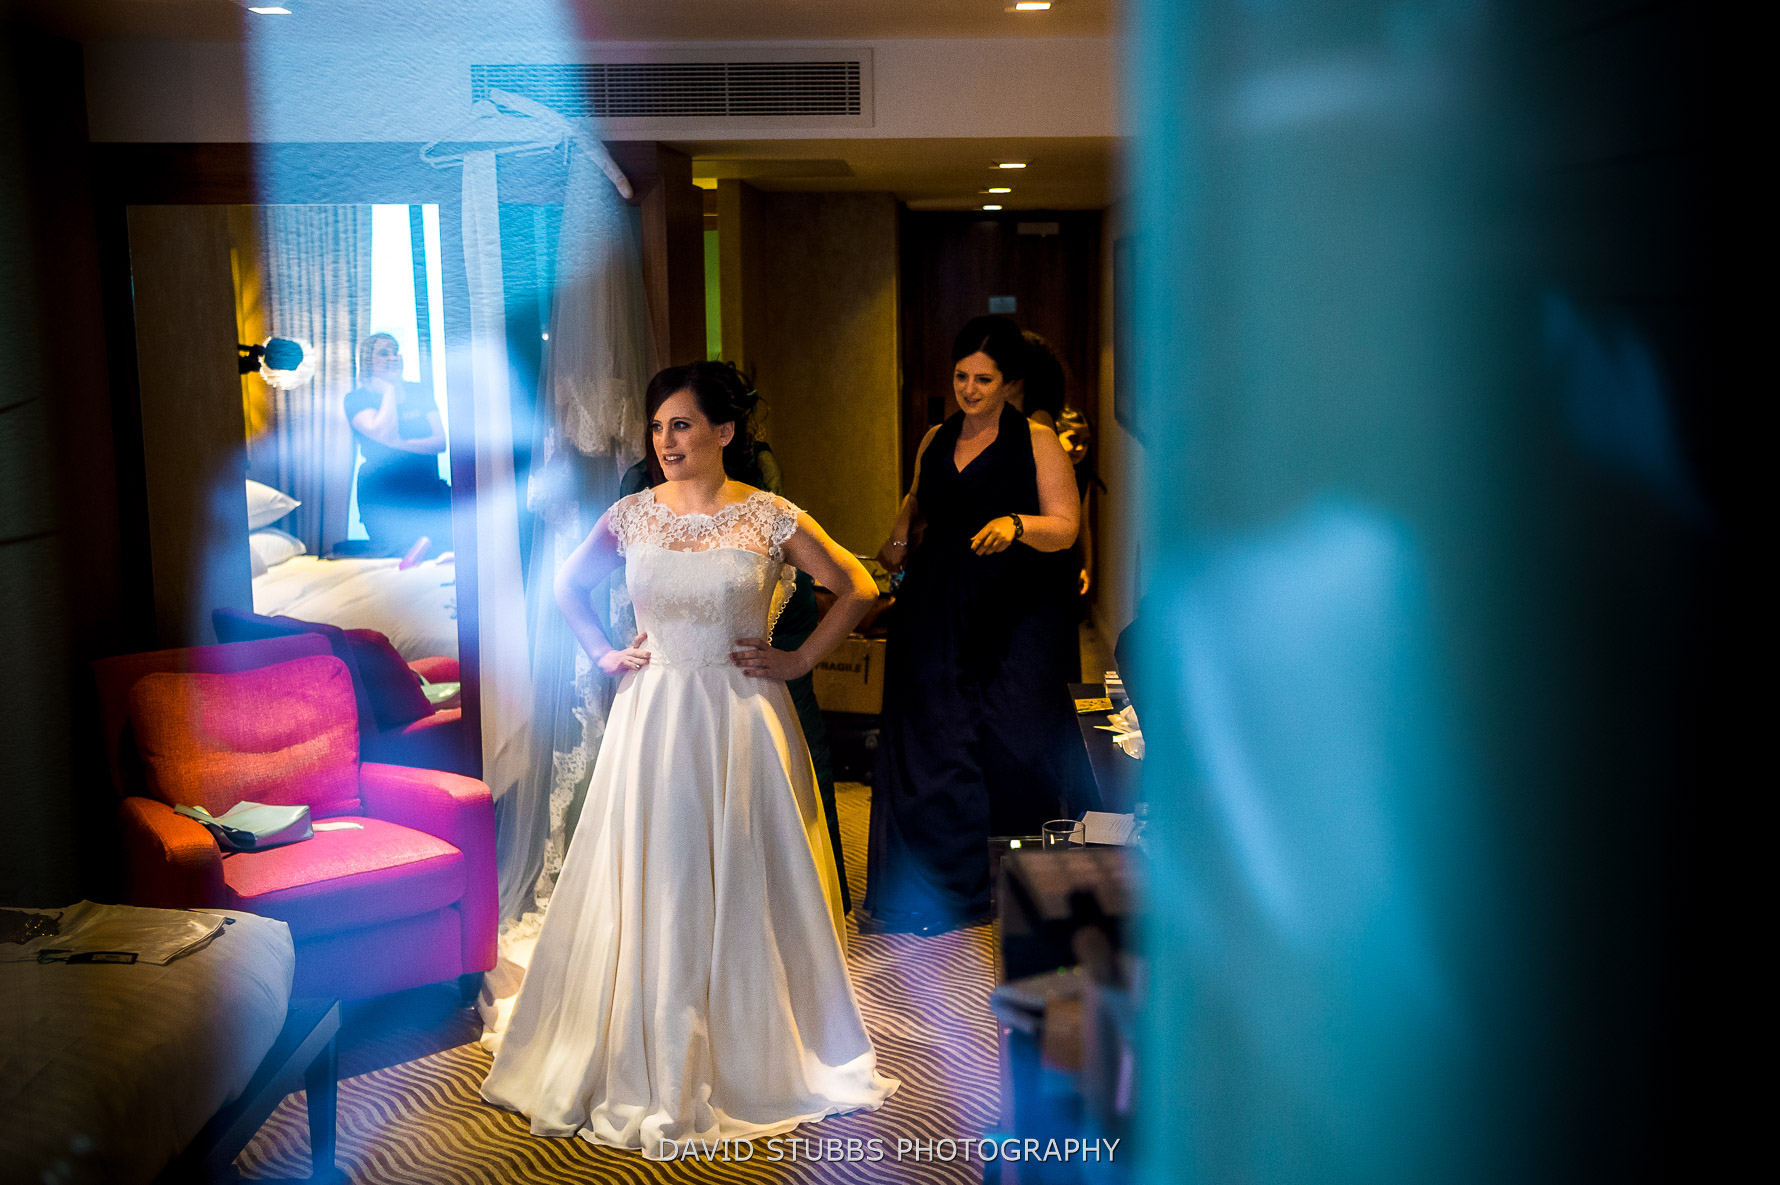 bride in wedding dress through glass